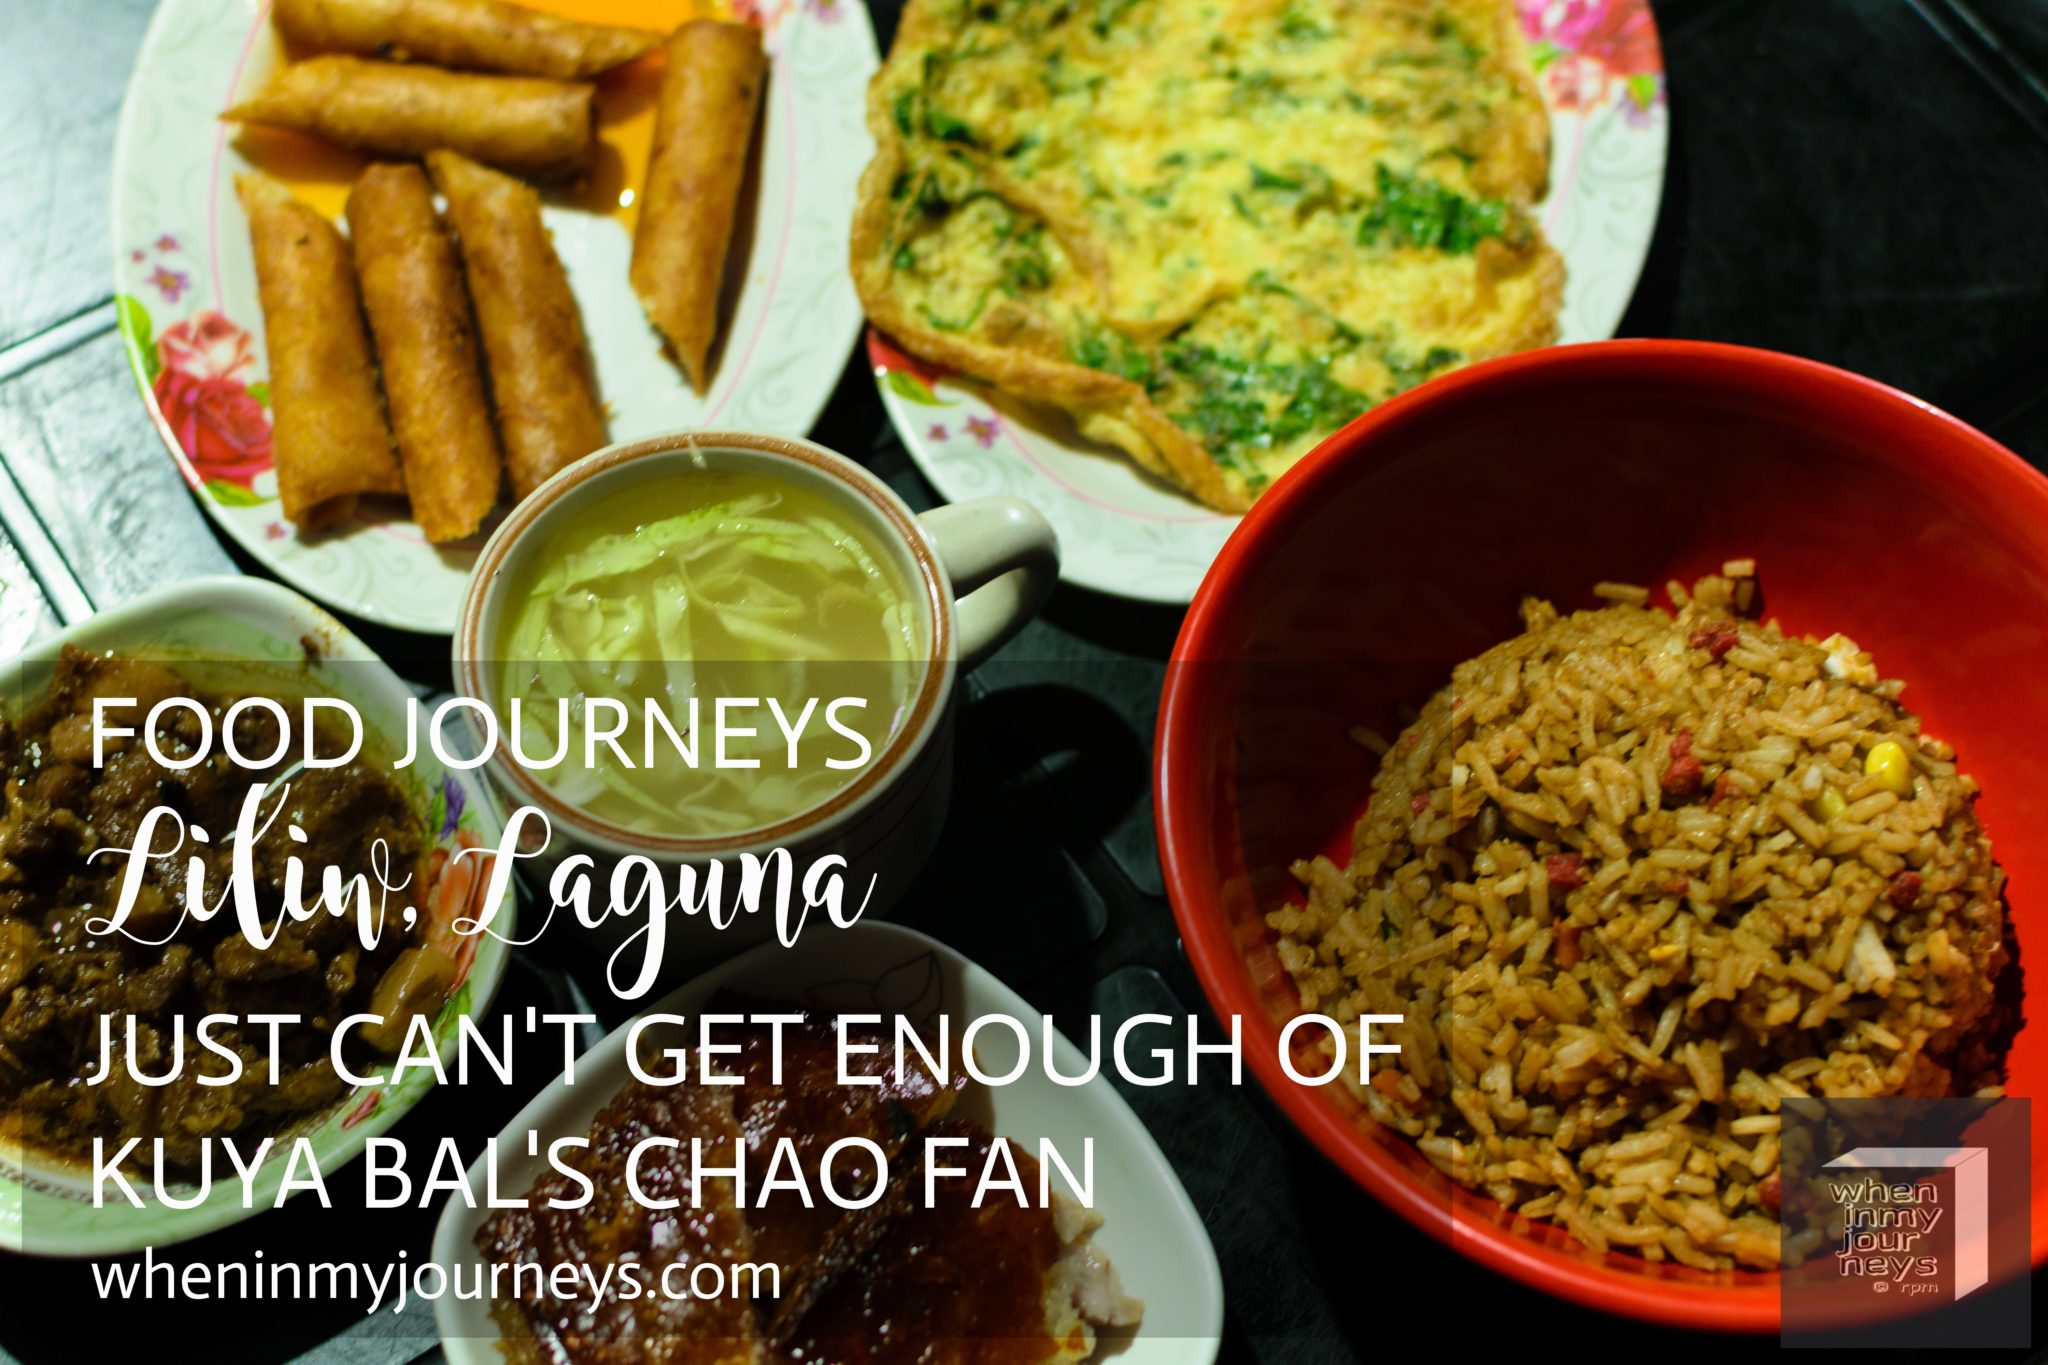 Food Journeys Liliw Laguna - Just Can't Get Enough of Kuya Bal's Chao Fan